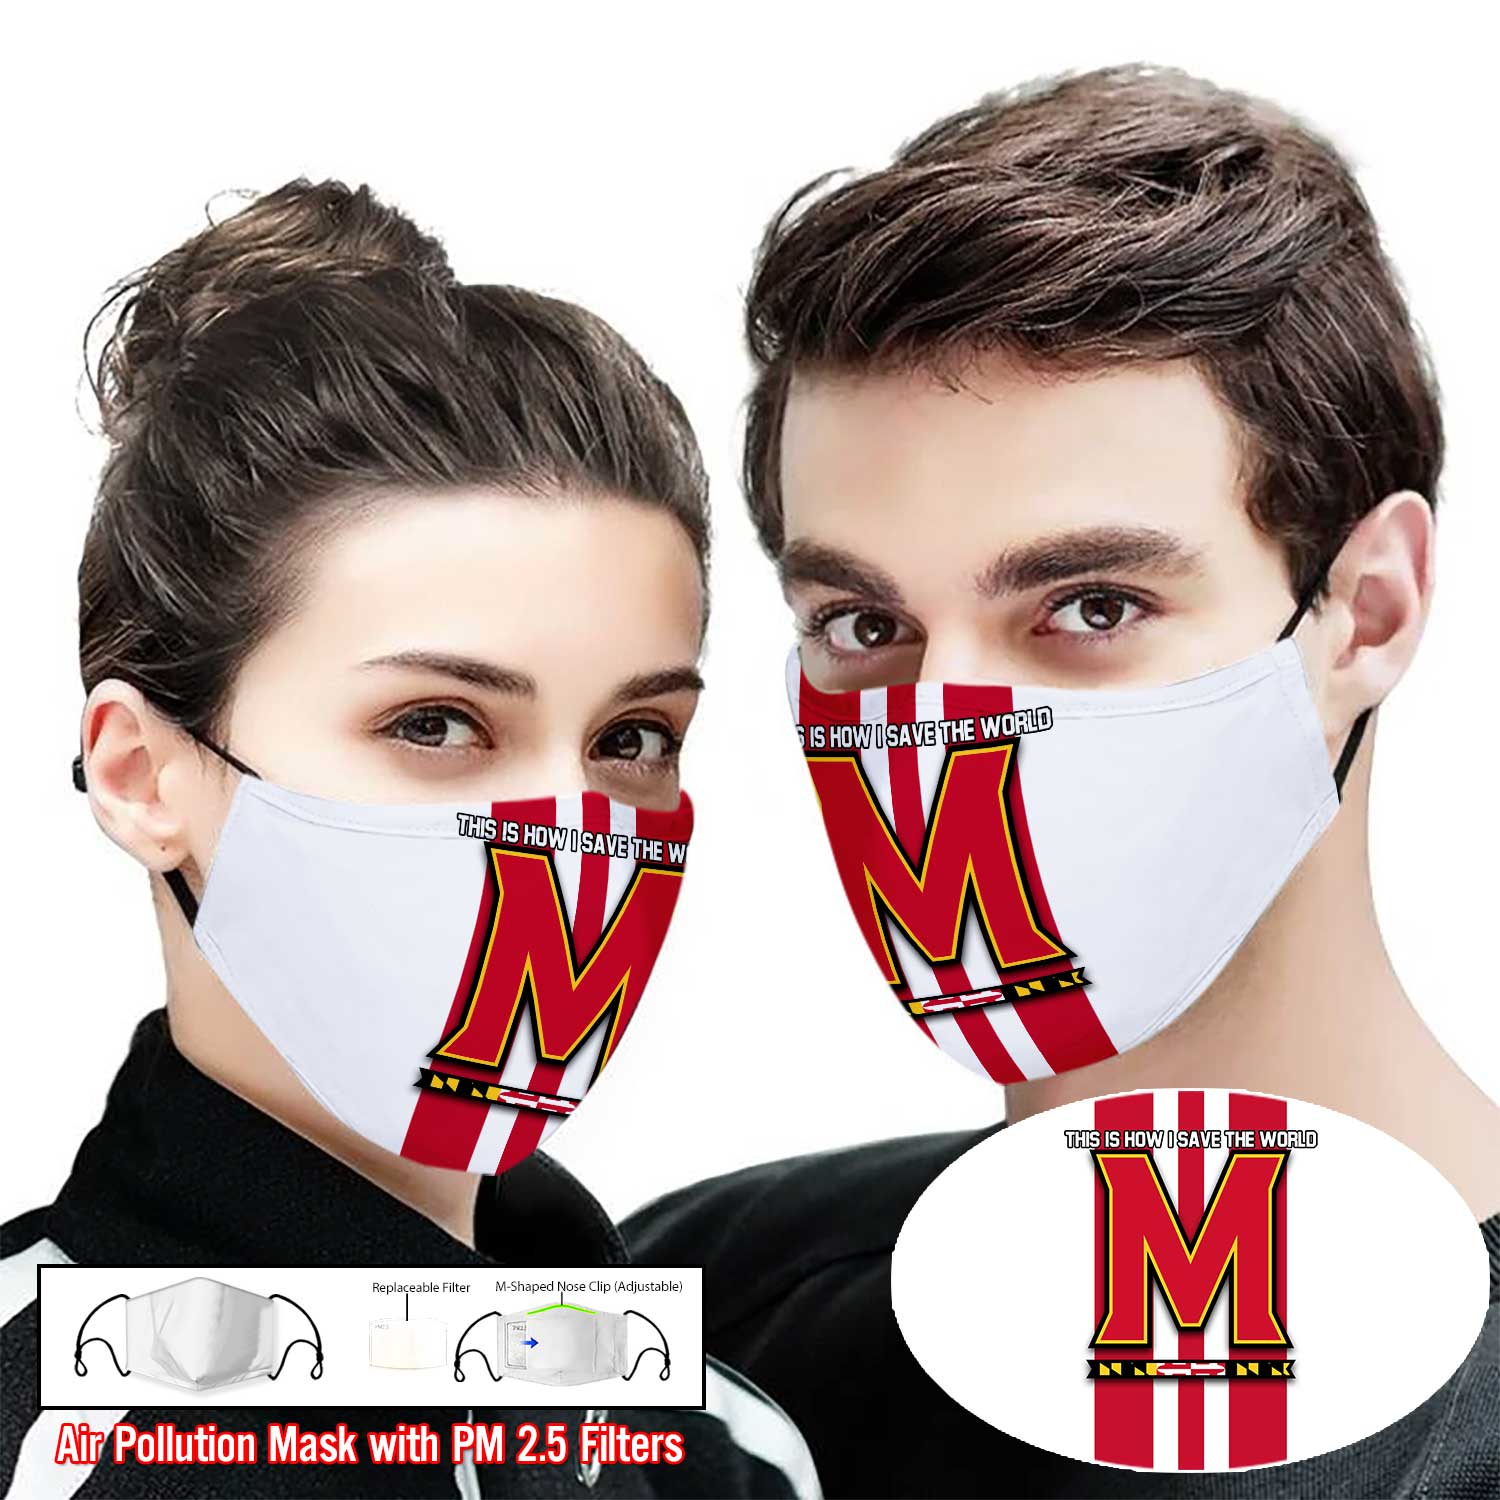 Maryland terrapins this is how i save the world face mask 1